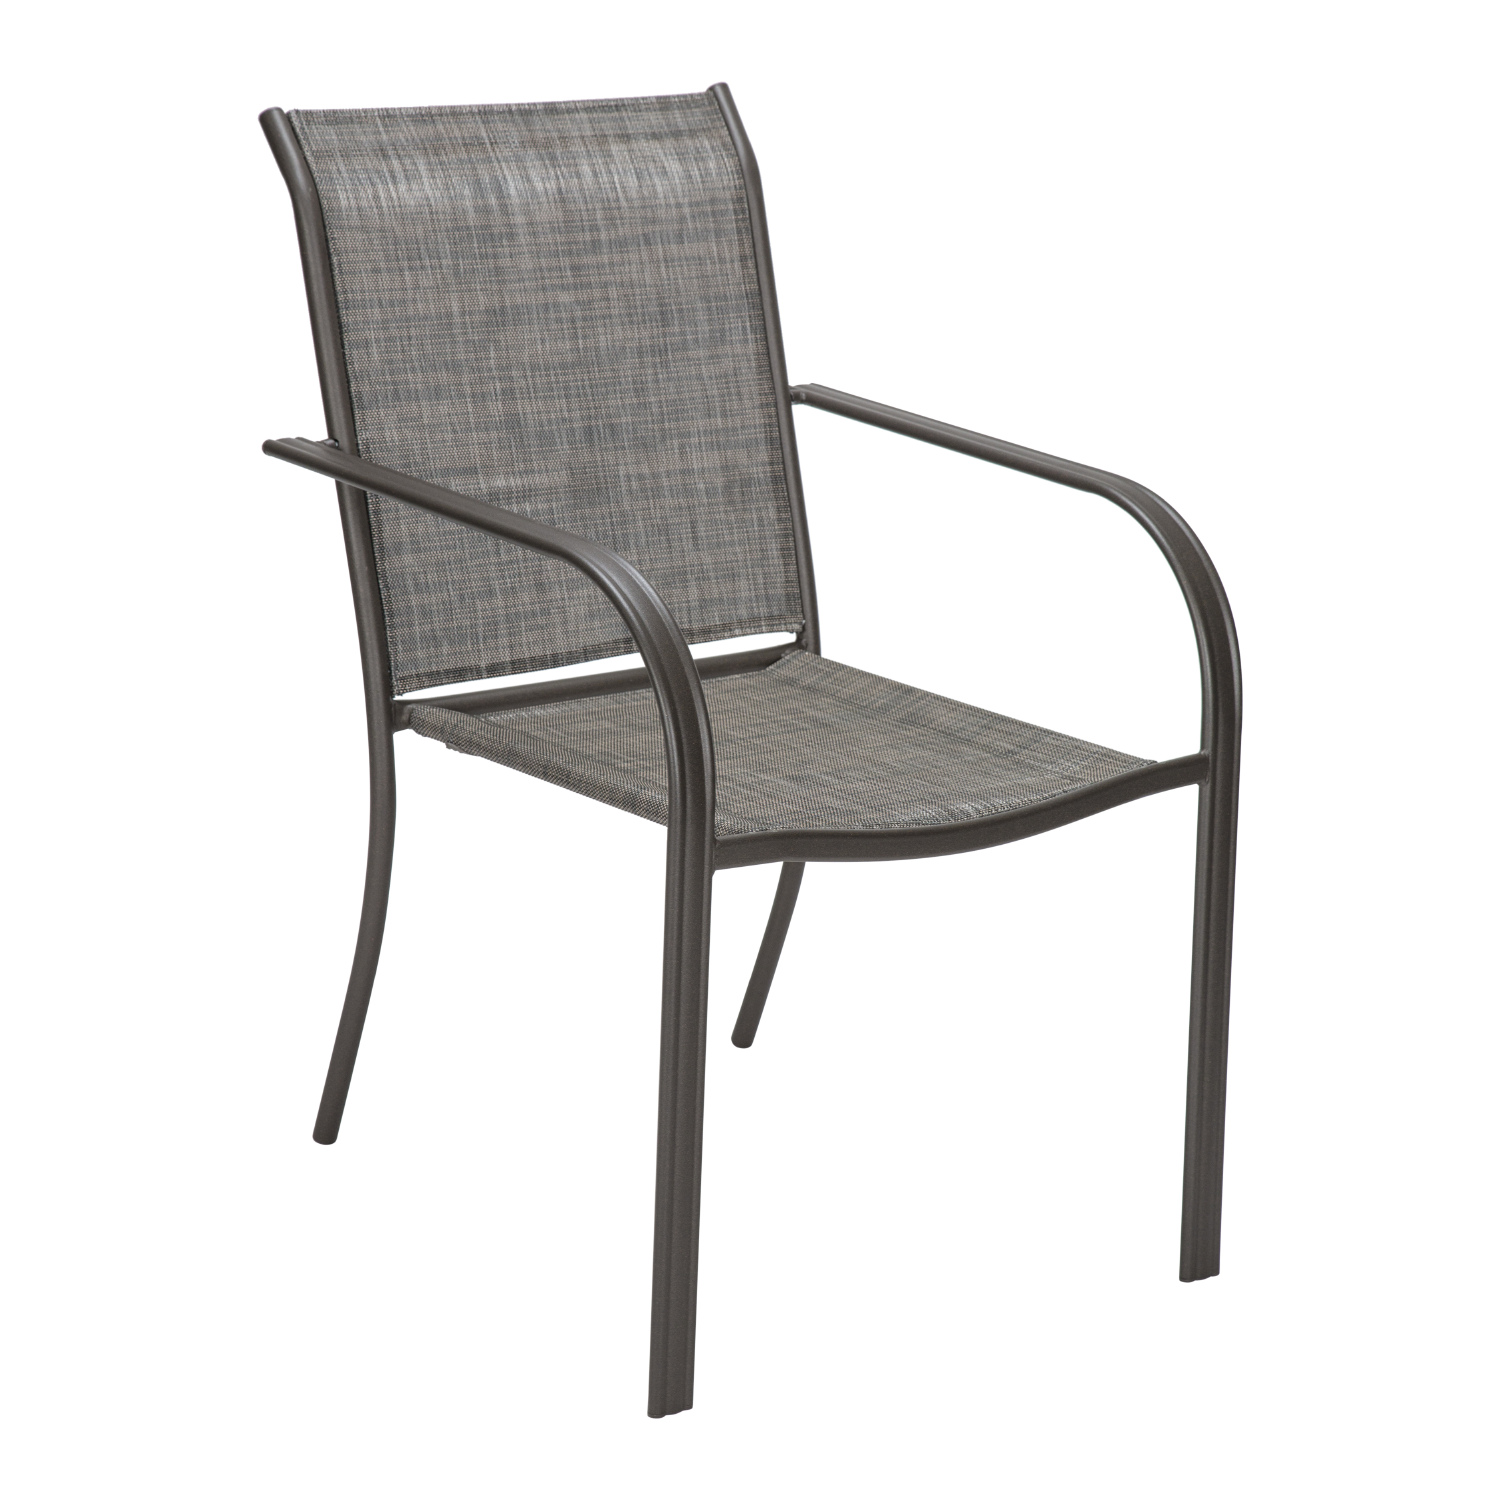 Sling Chairs Capri Sling Chair